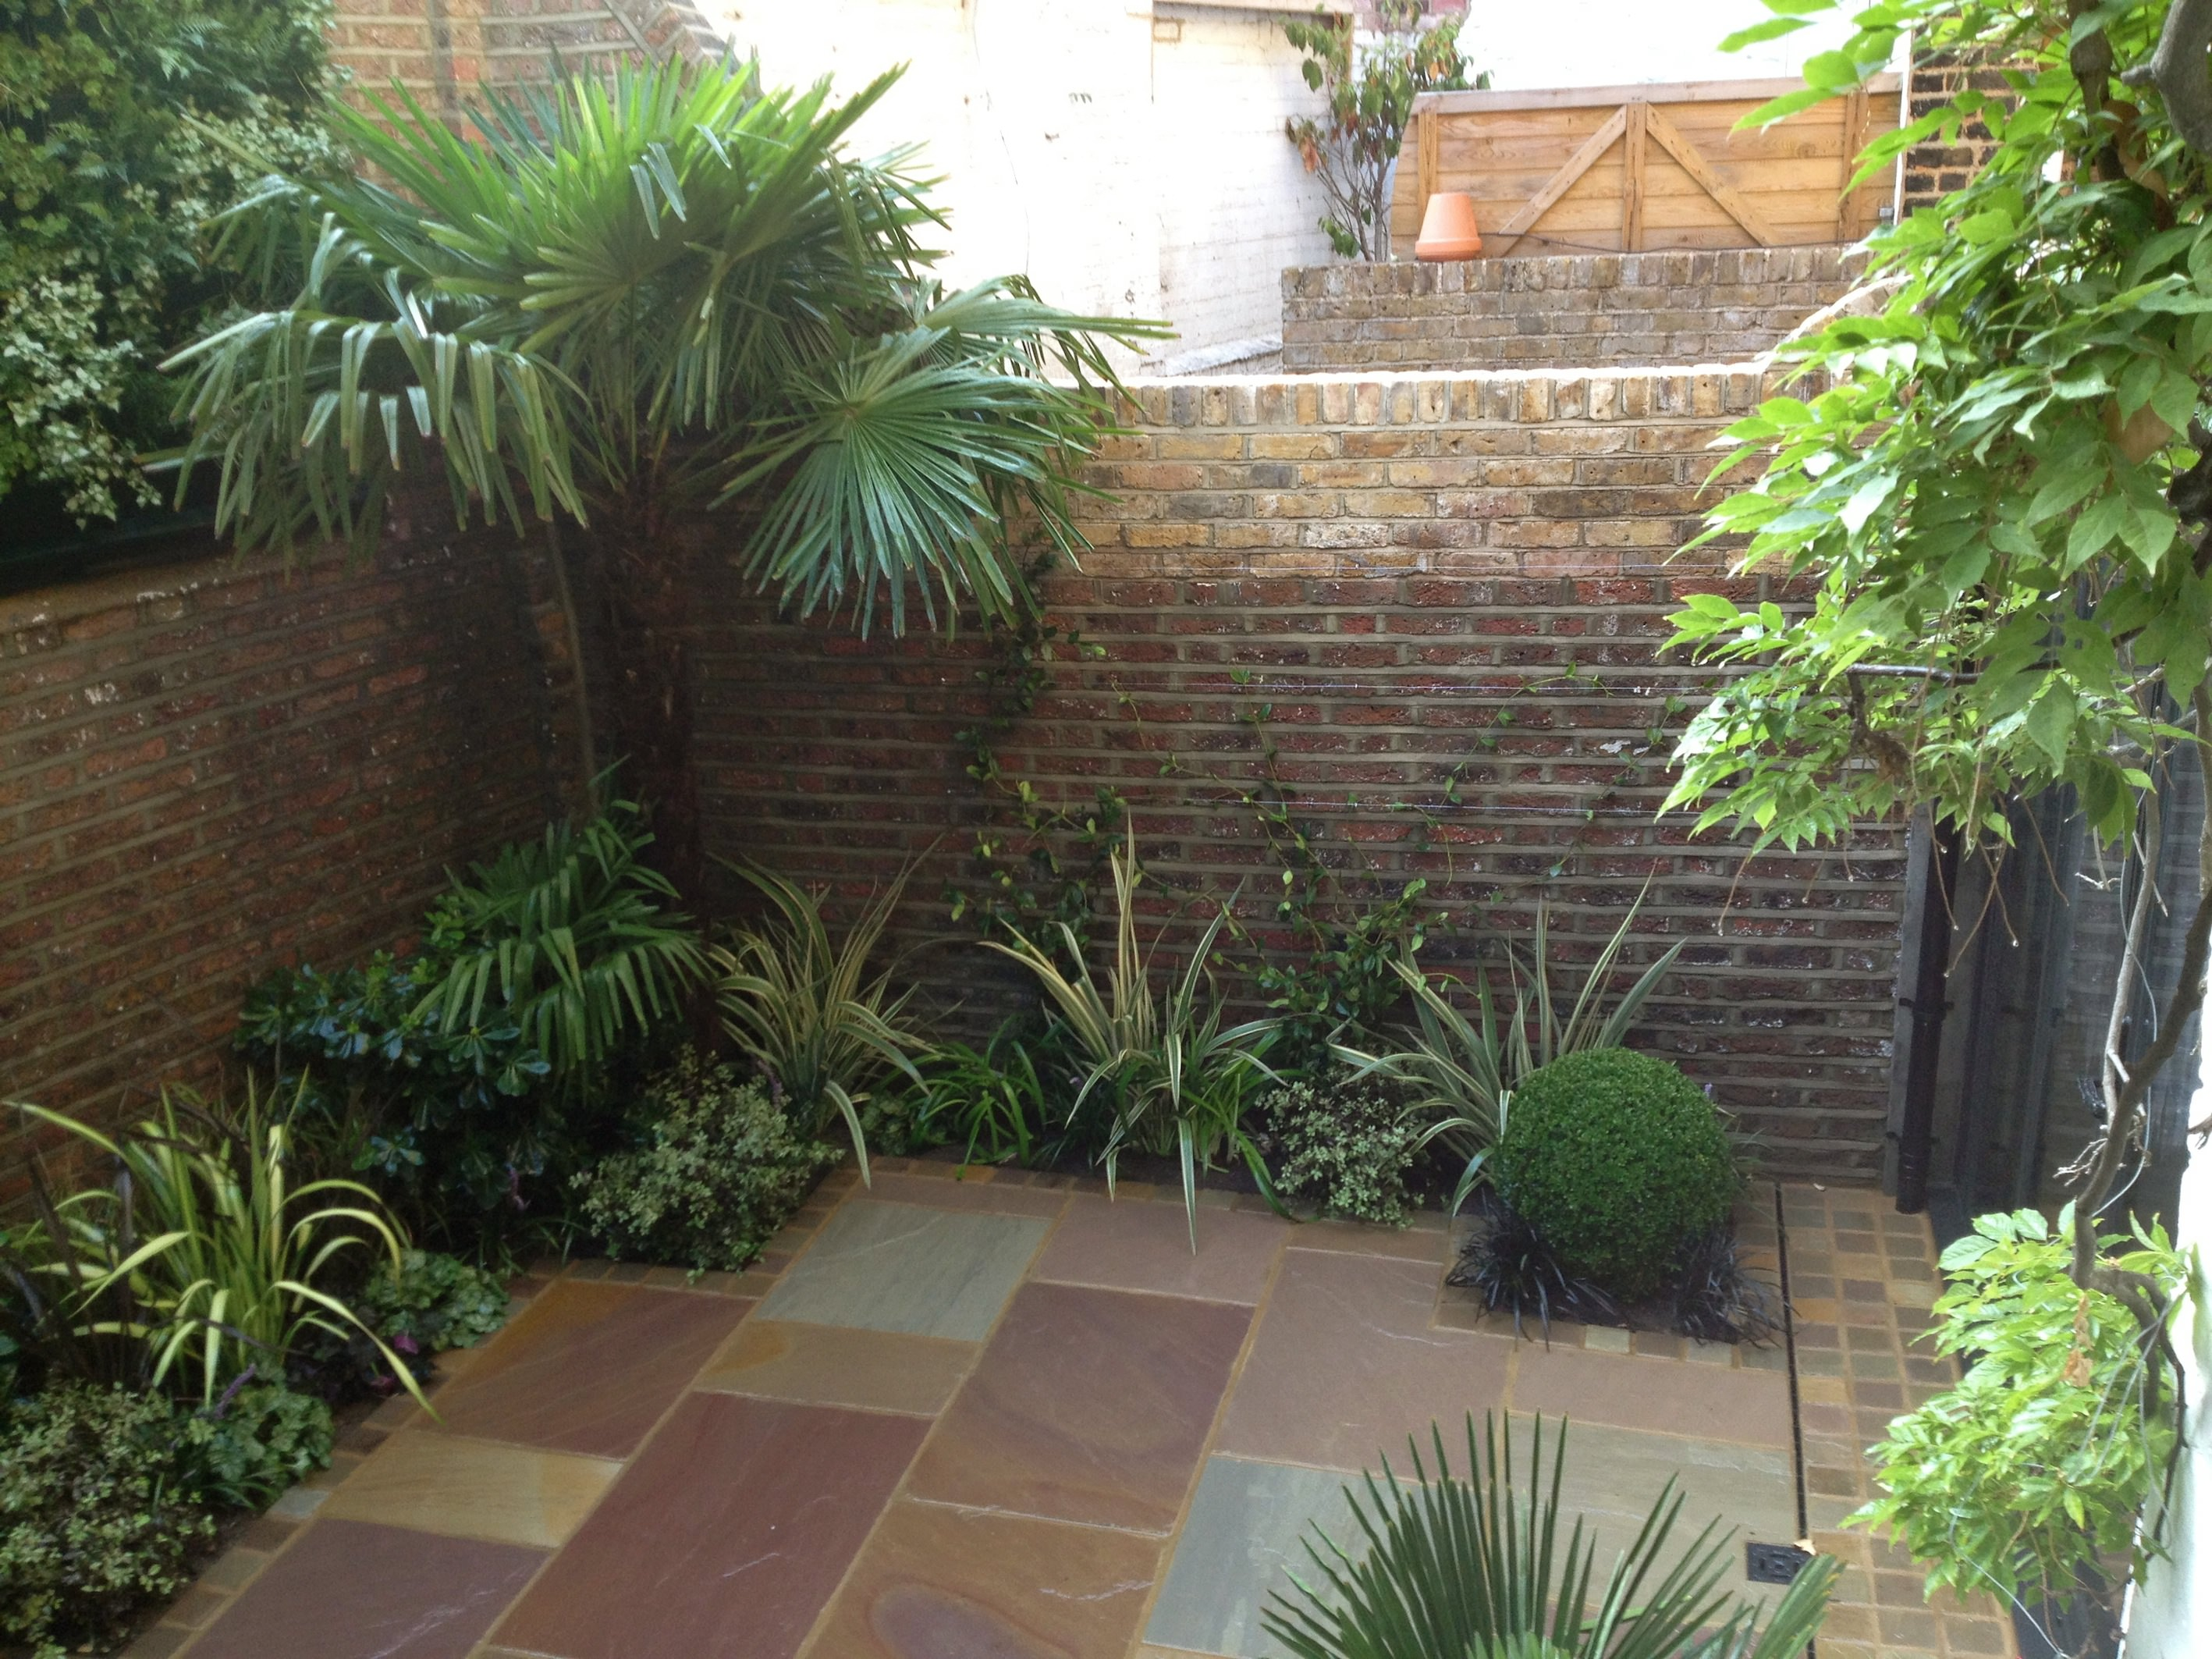 Low maintenance garden designs garden club london for Small garden design uk